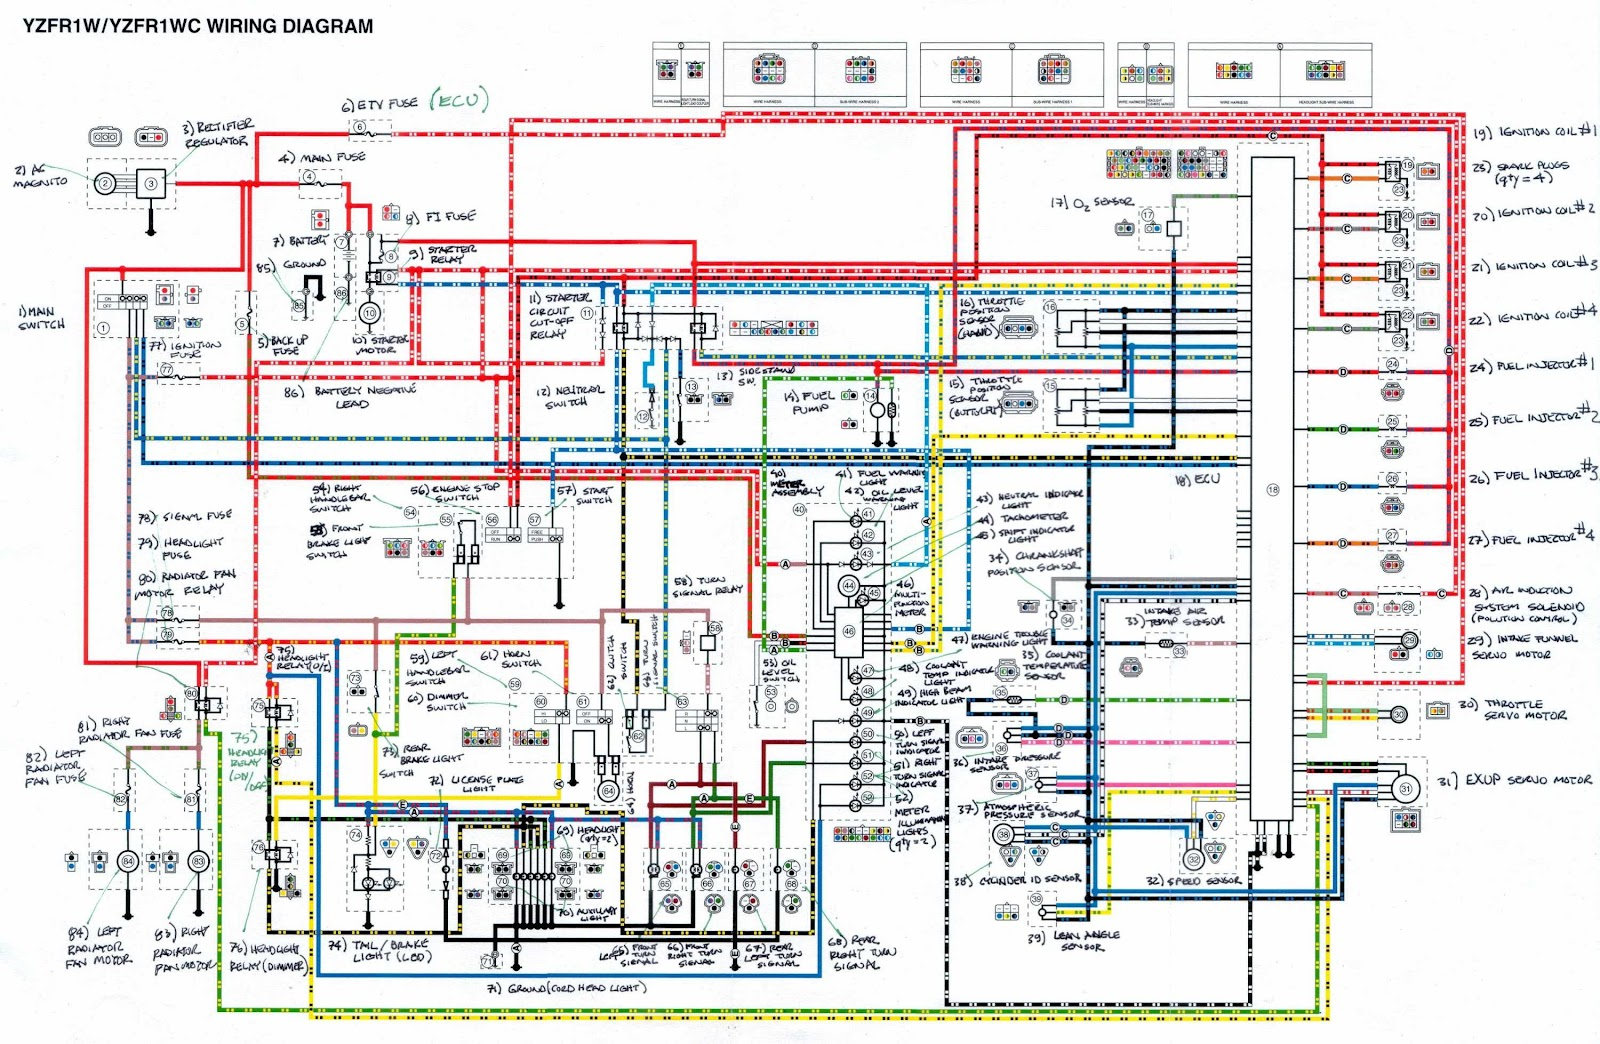 hight resolution of 2001 yamaha yzf r1 wiring diagram 2006 yamaha yzf r1 wiring diagram